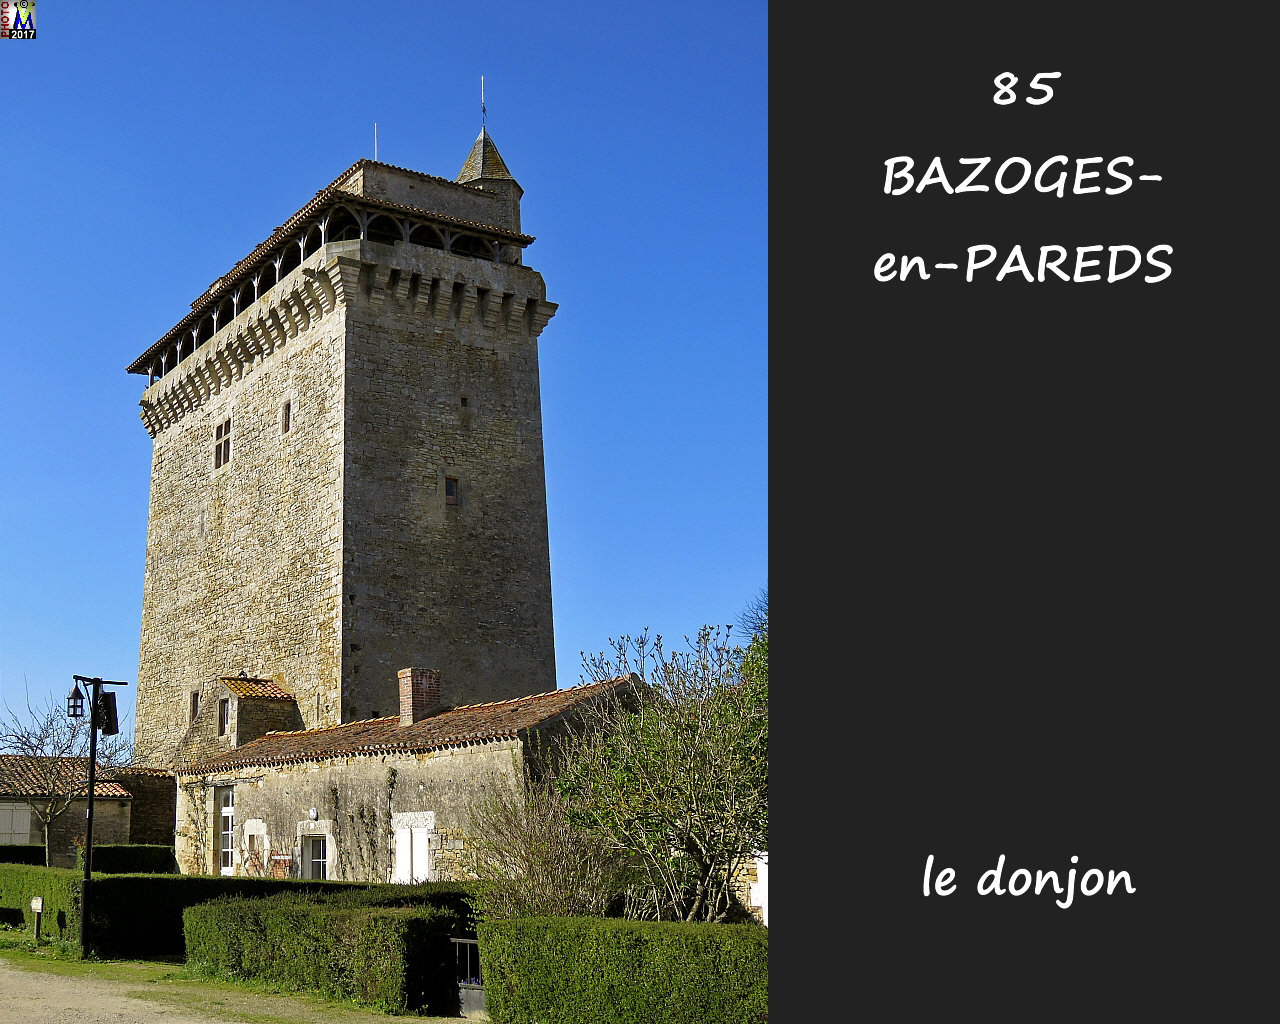 85BAZOGES-PAREDS_donjon_1008.jpg